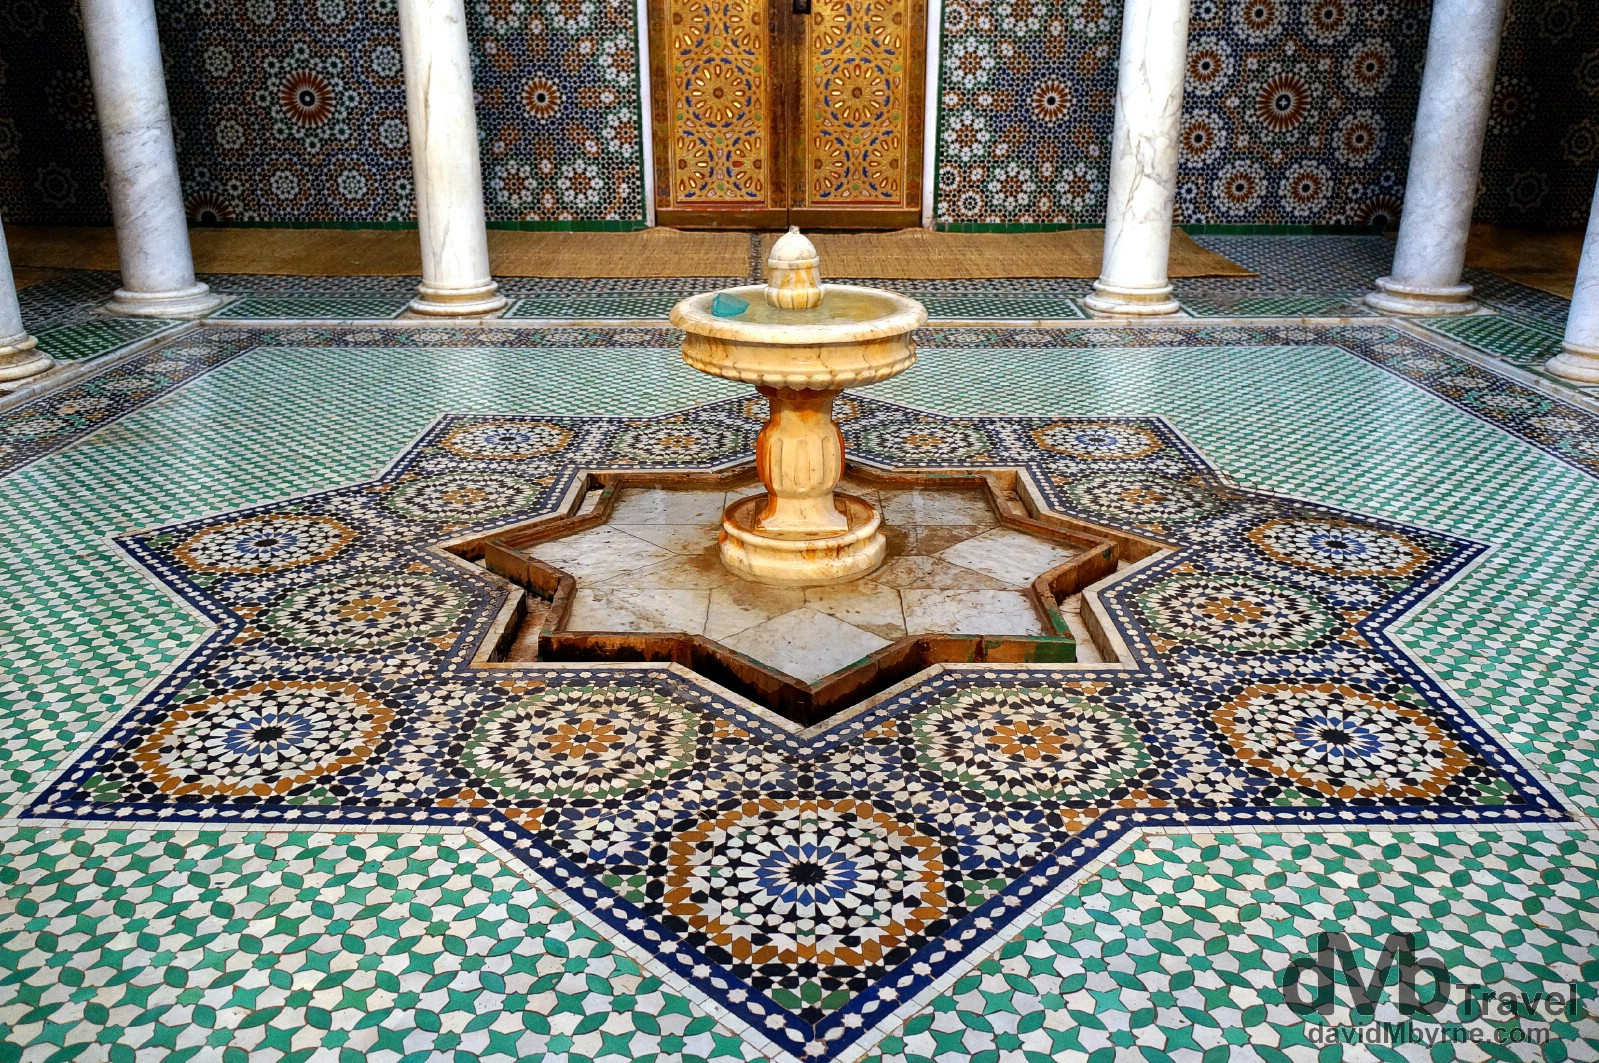 Zellij tile work in the tomb hall of the Moulay Ismail Mausoleum in Meknes, Morocco. May 24th, 2014.